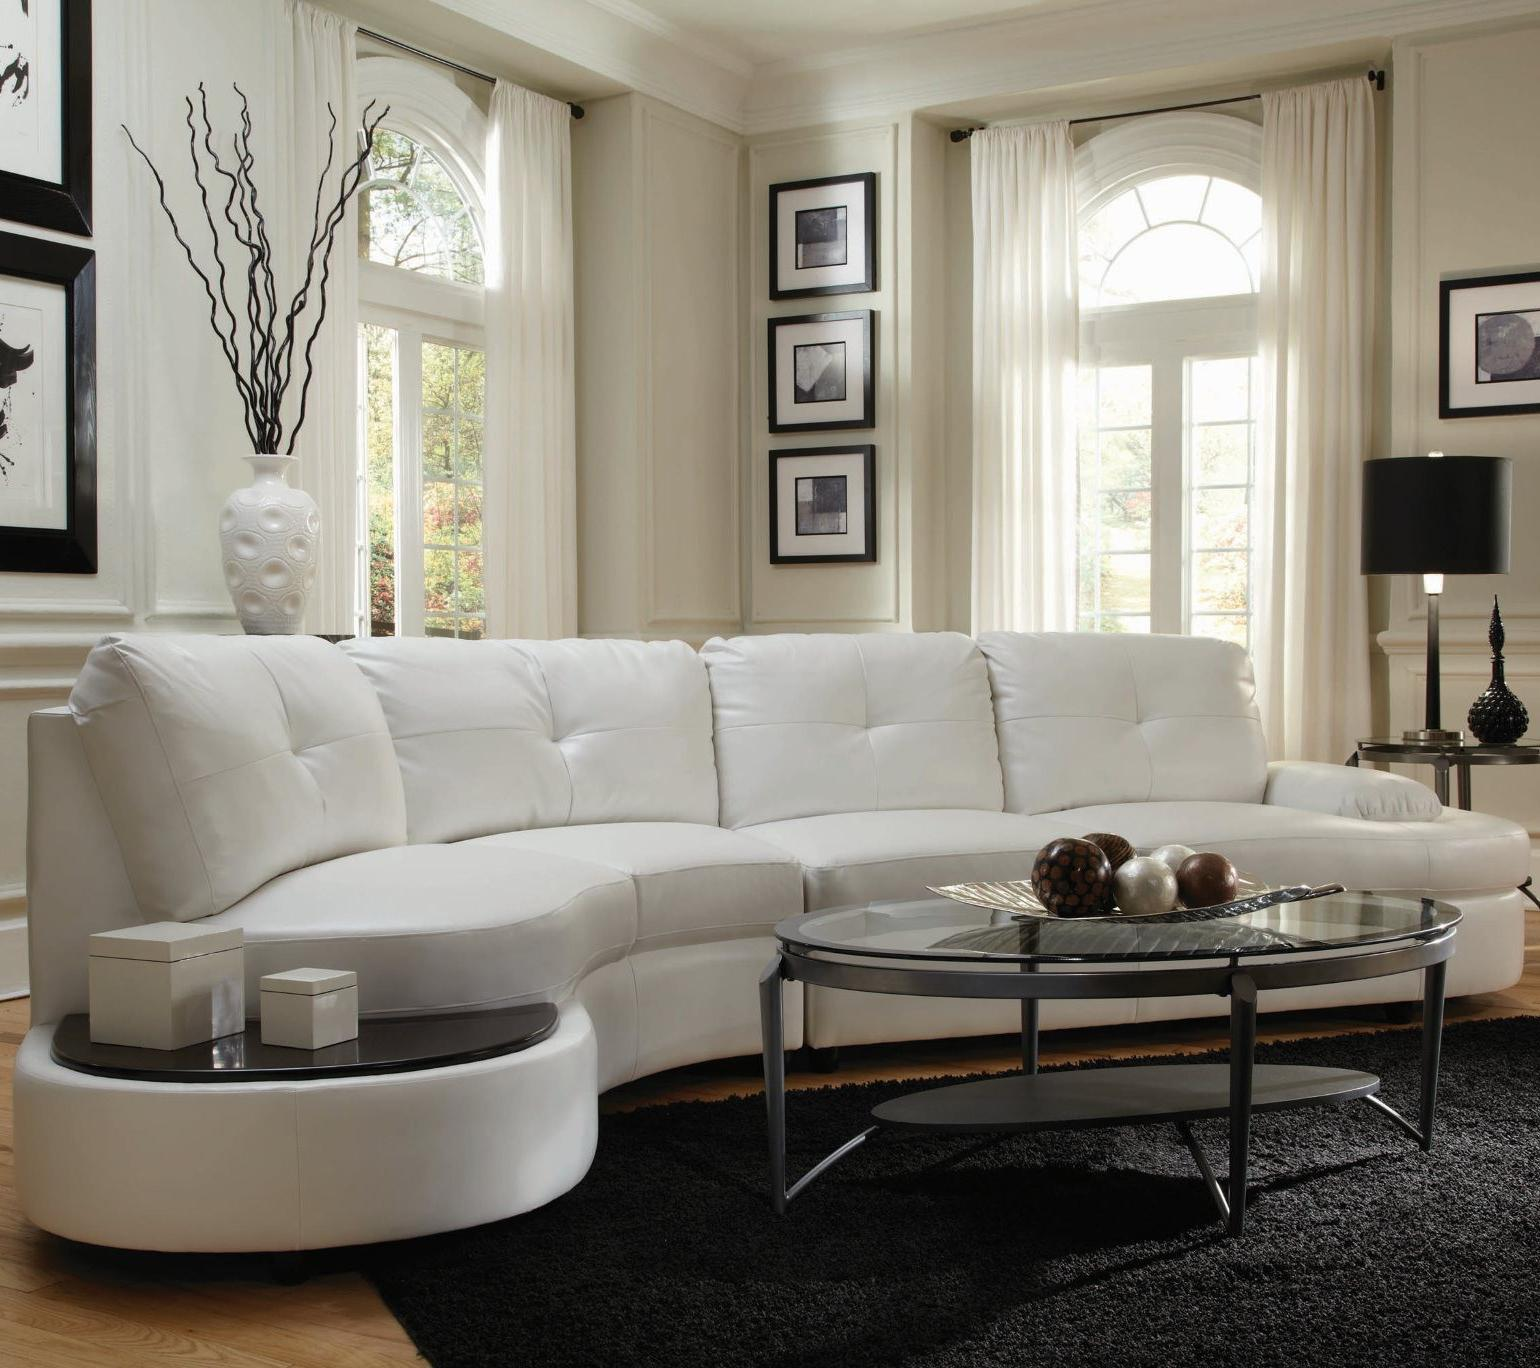 Talia Sectional Conversation Sofa by Coaster at Lapeer Furniture & Mattress Center